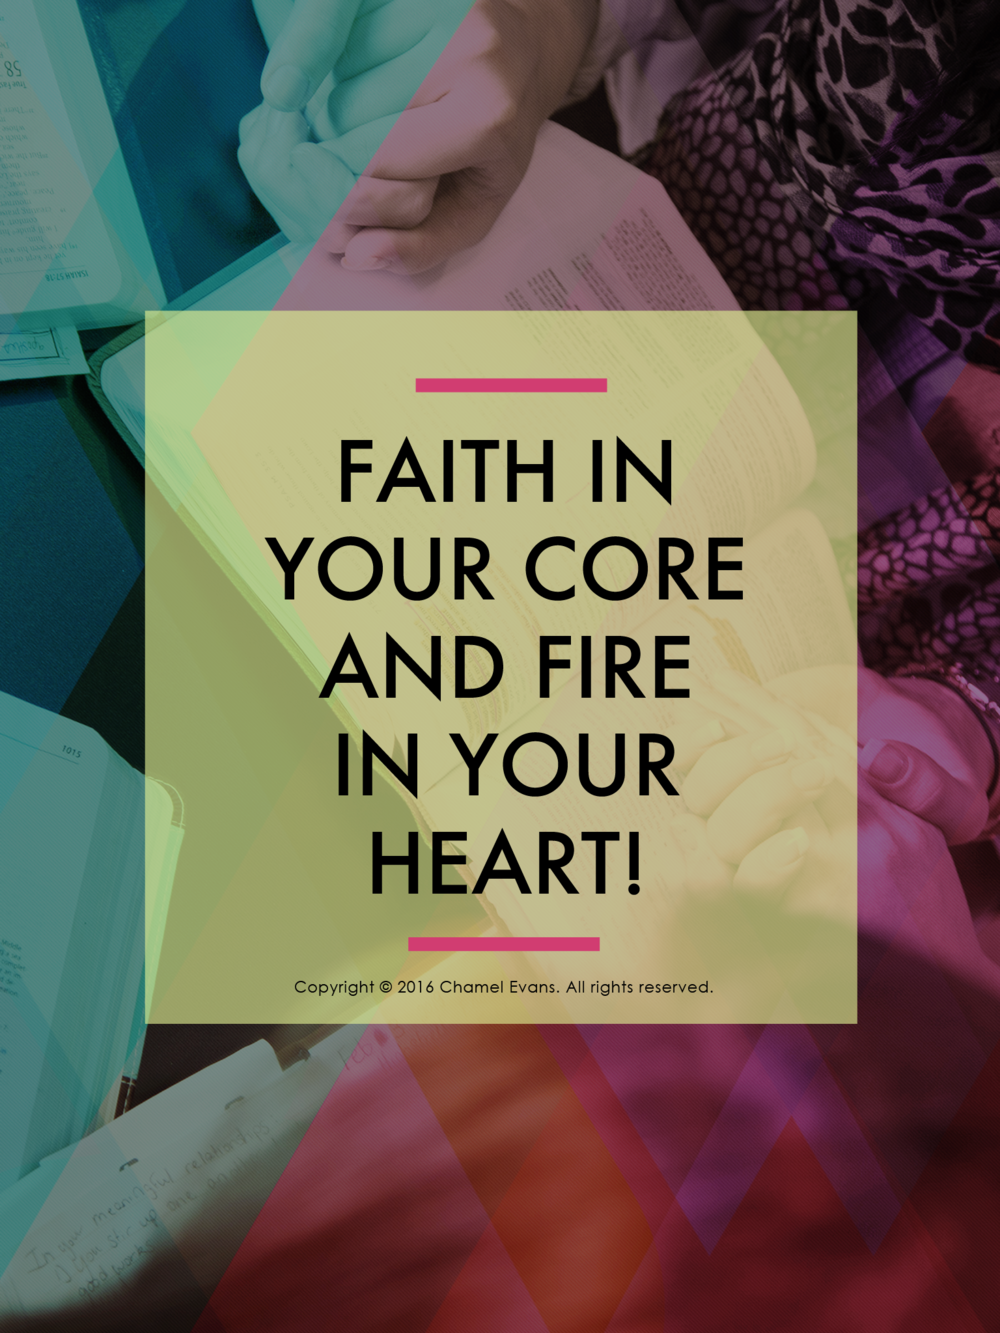 Exclusive iFaith bundle pack for #faithjourney community VIPs | www.chamelevans.com